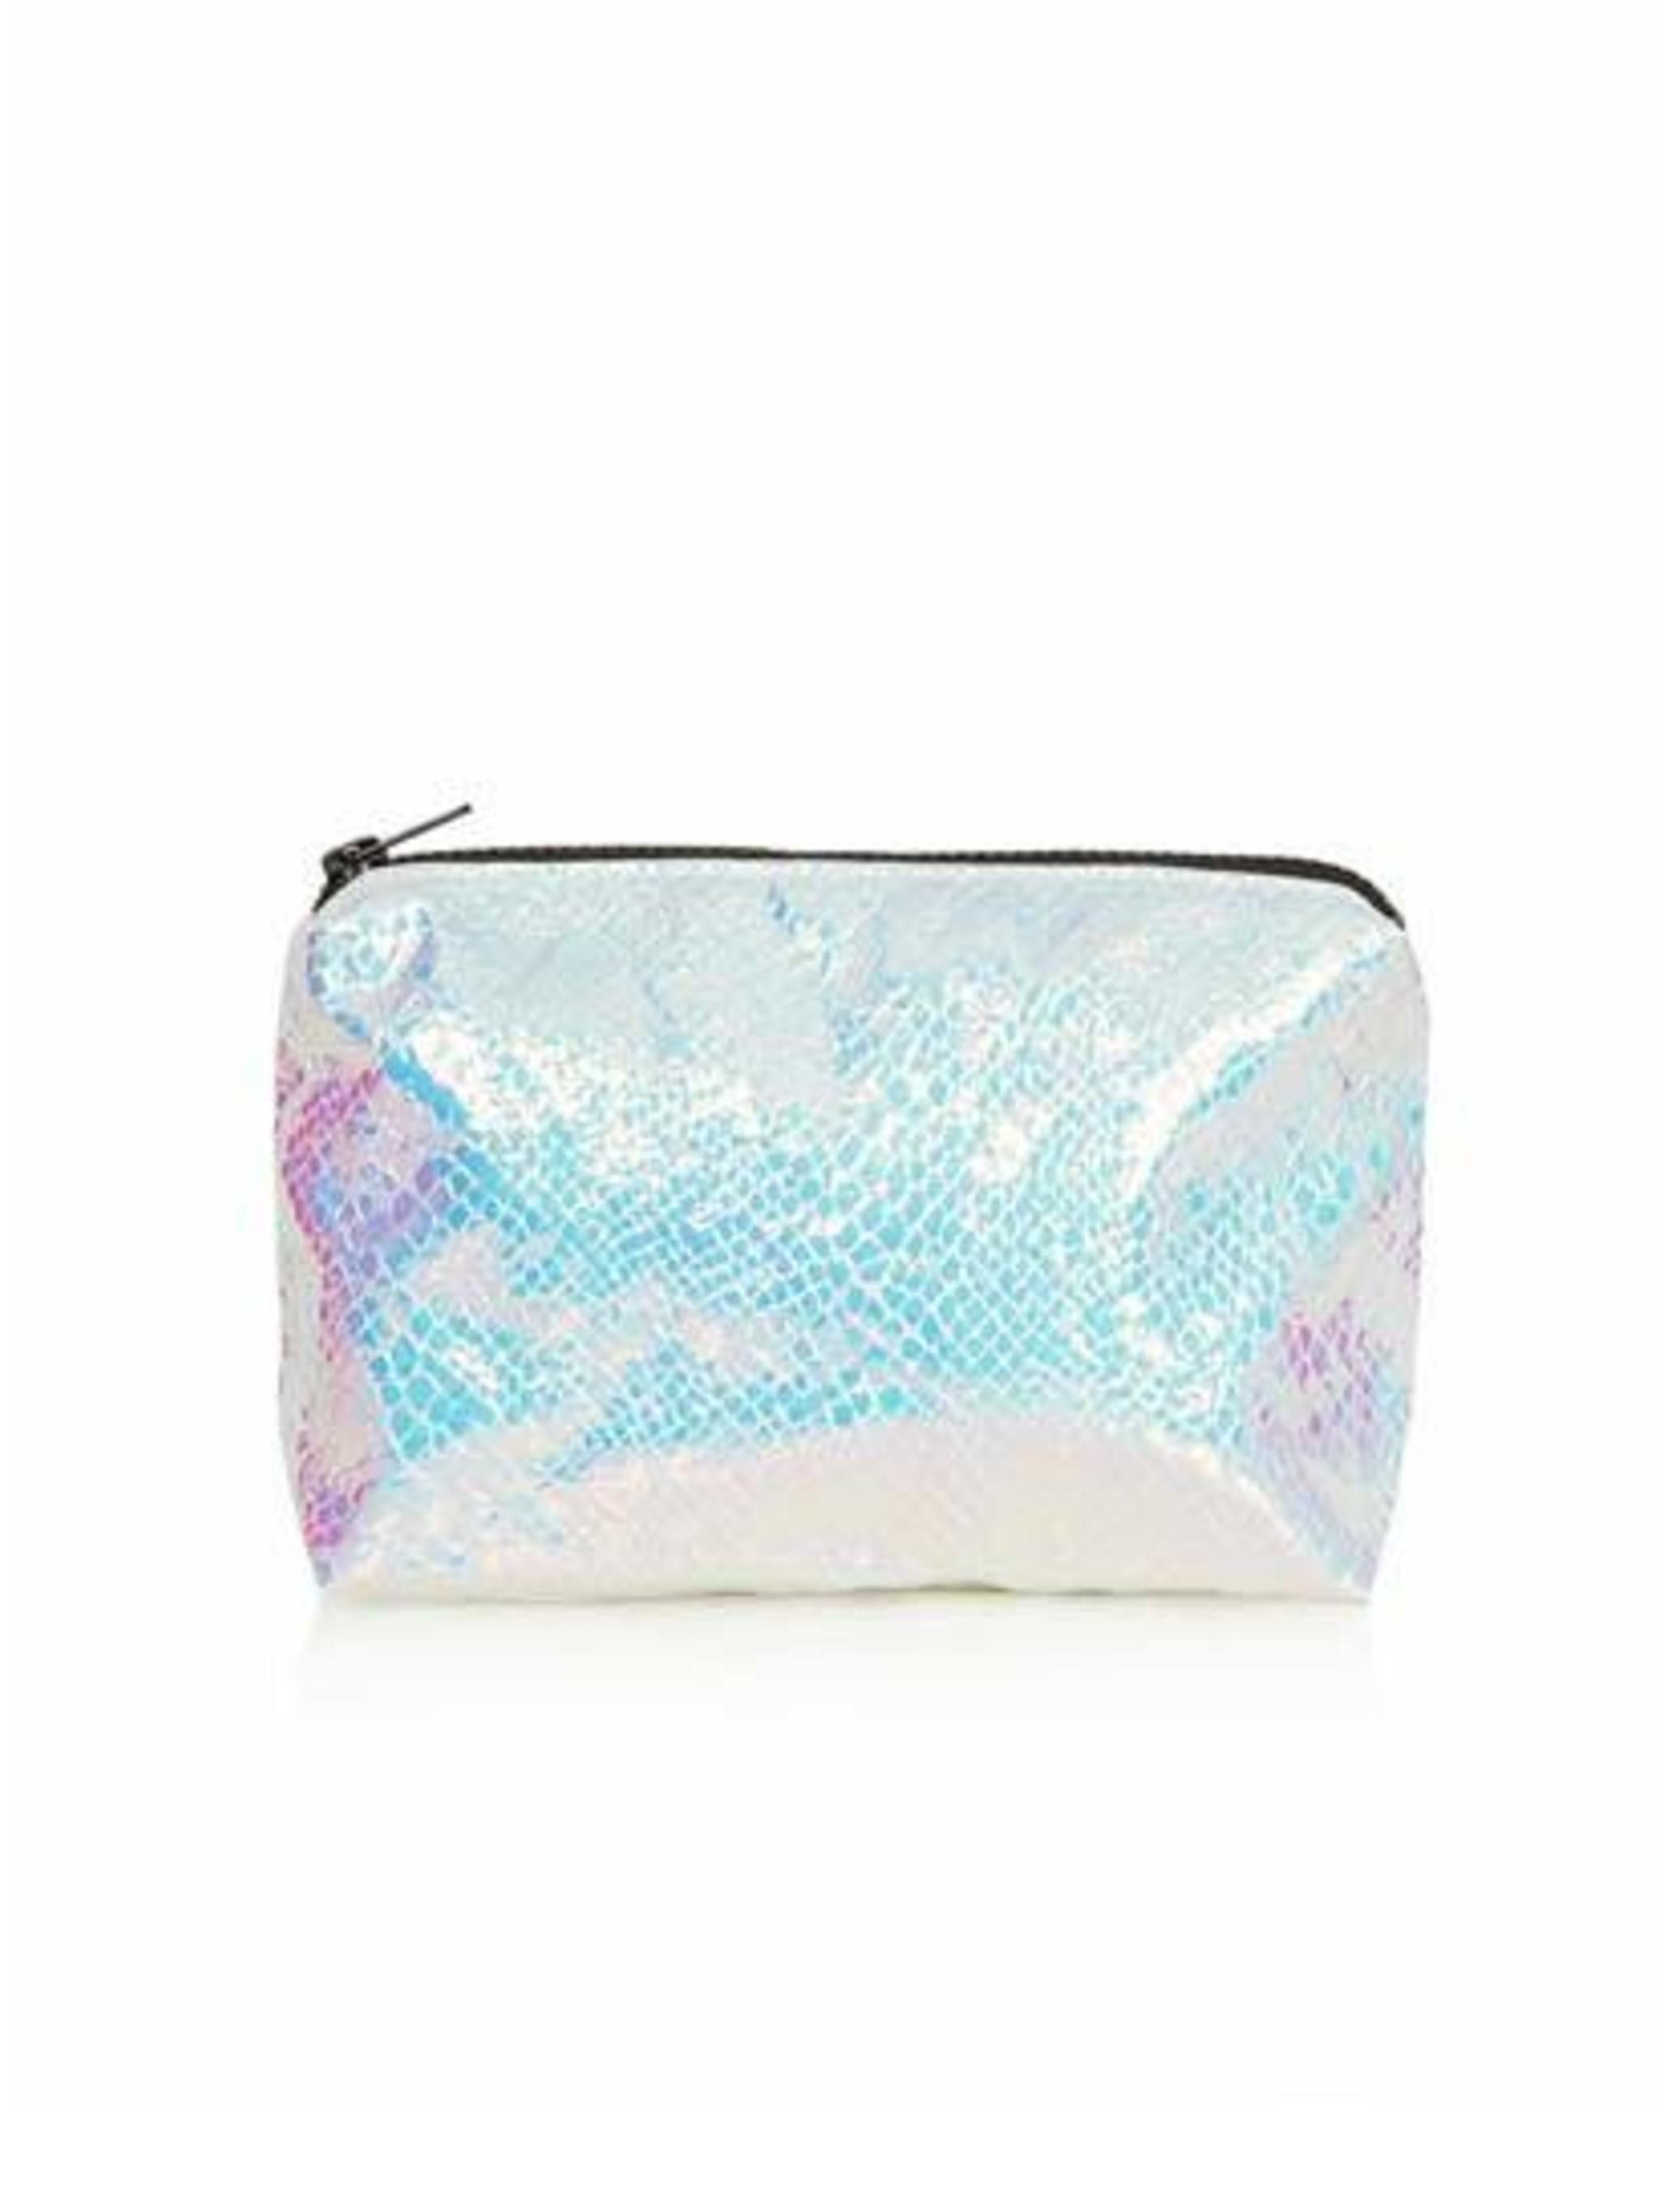 "<p>Everyone needs to put their makeup in something. Treat them to this Mermaid Metallic Makeup Bag from <a href=""http://www.topshop.com/en/tsuk/product/bags-accessories-1702216/bags-purses-462/mermaid-make-up-bag-2564367?bi=1&amp&#x3B;ps=200"">Topshop</a>, only"